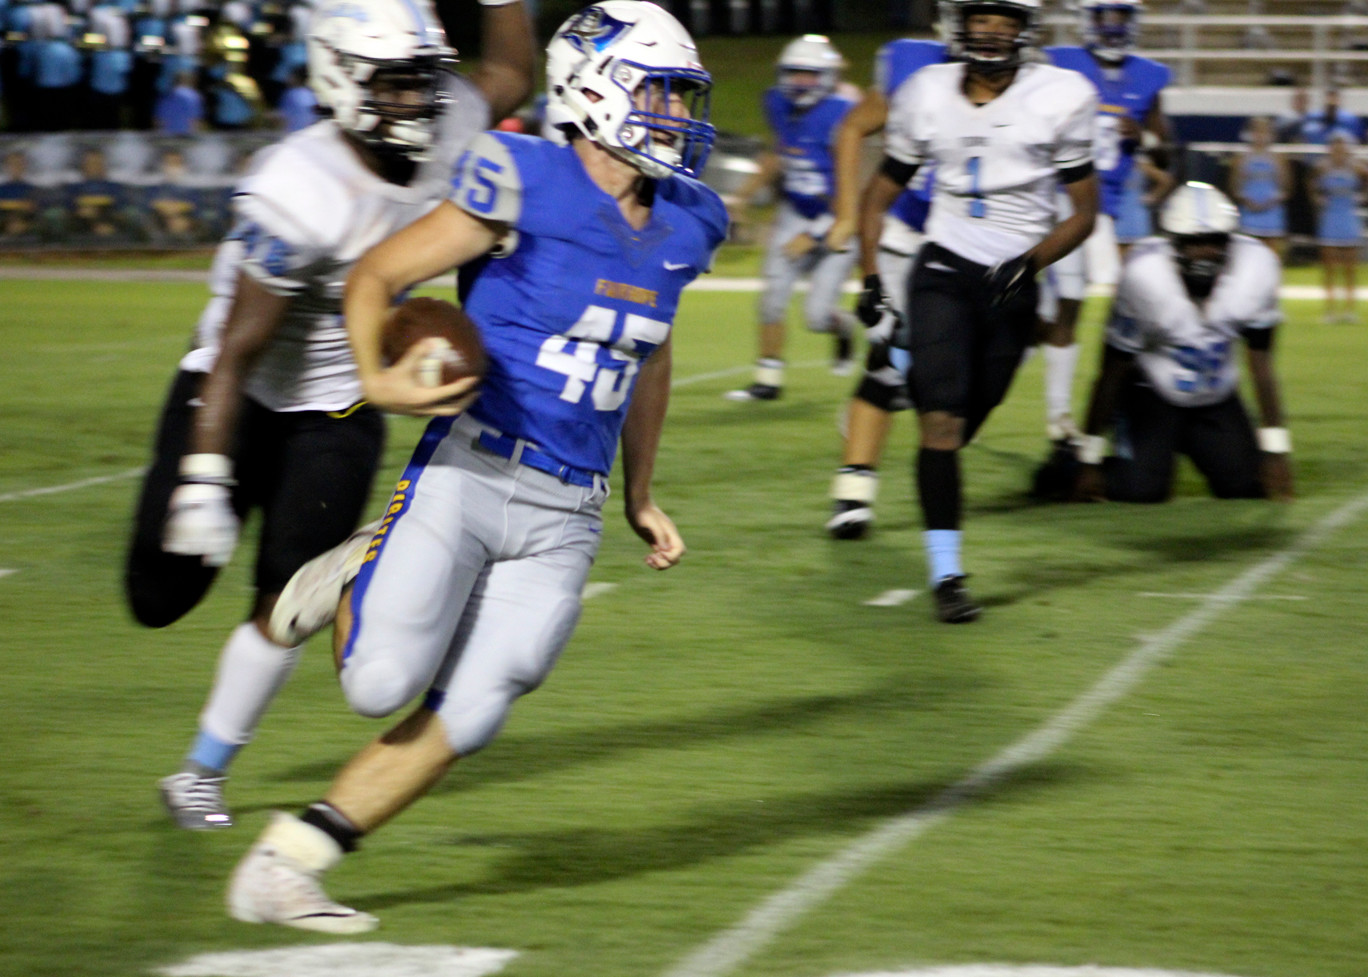 Senior running back Michael Colclasure led the Pirates with 110 yards on eight carries in Friday night's victory.